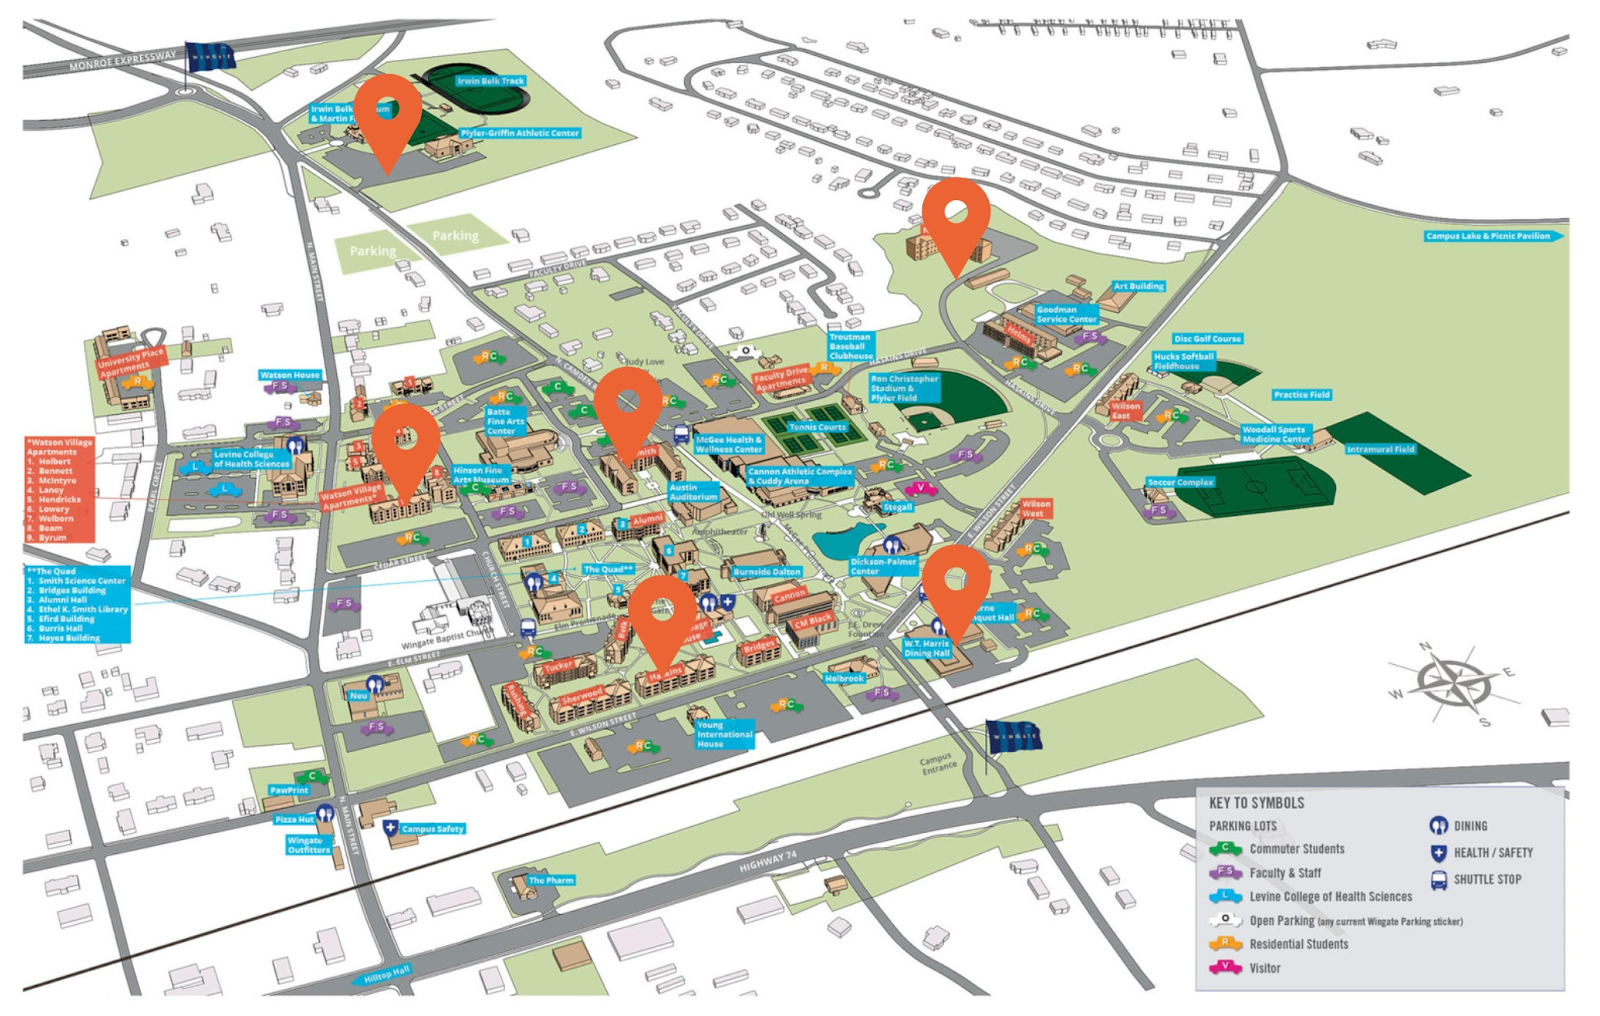 COVID-19 Entry Testing Locations Map of Wingate University